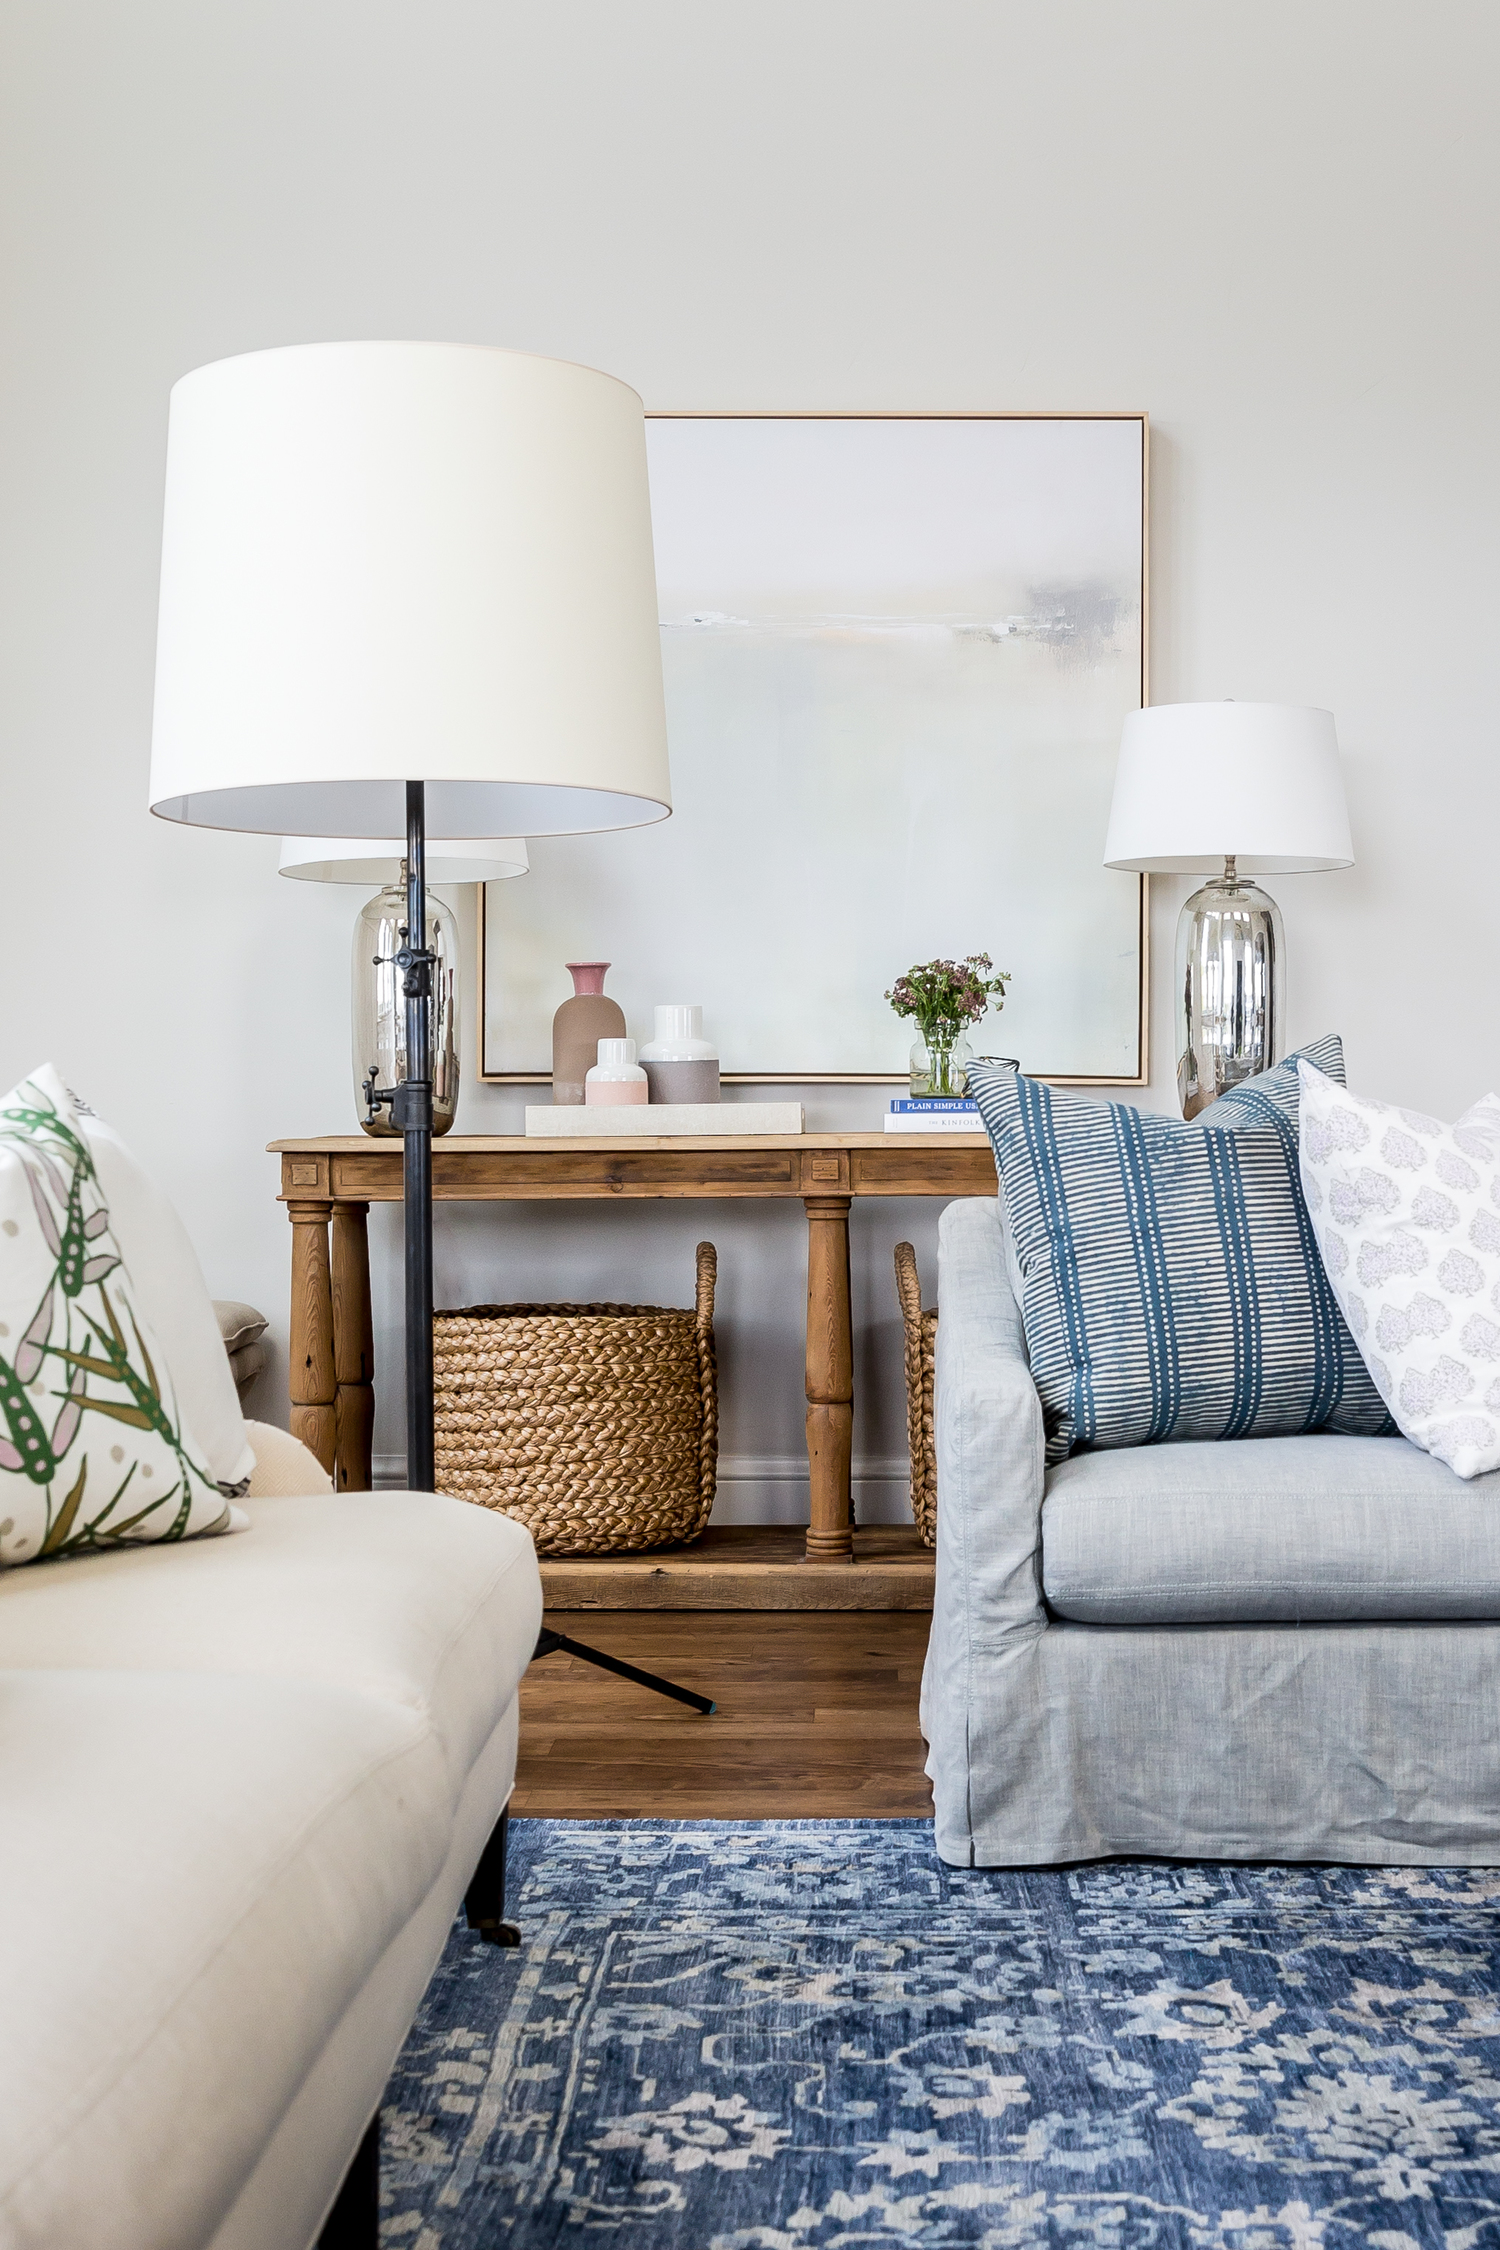 White and grey couches on blue and white area rug